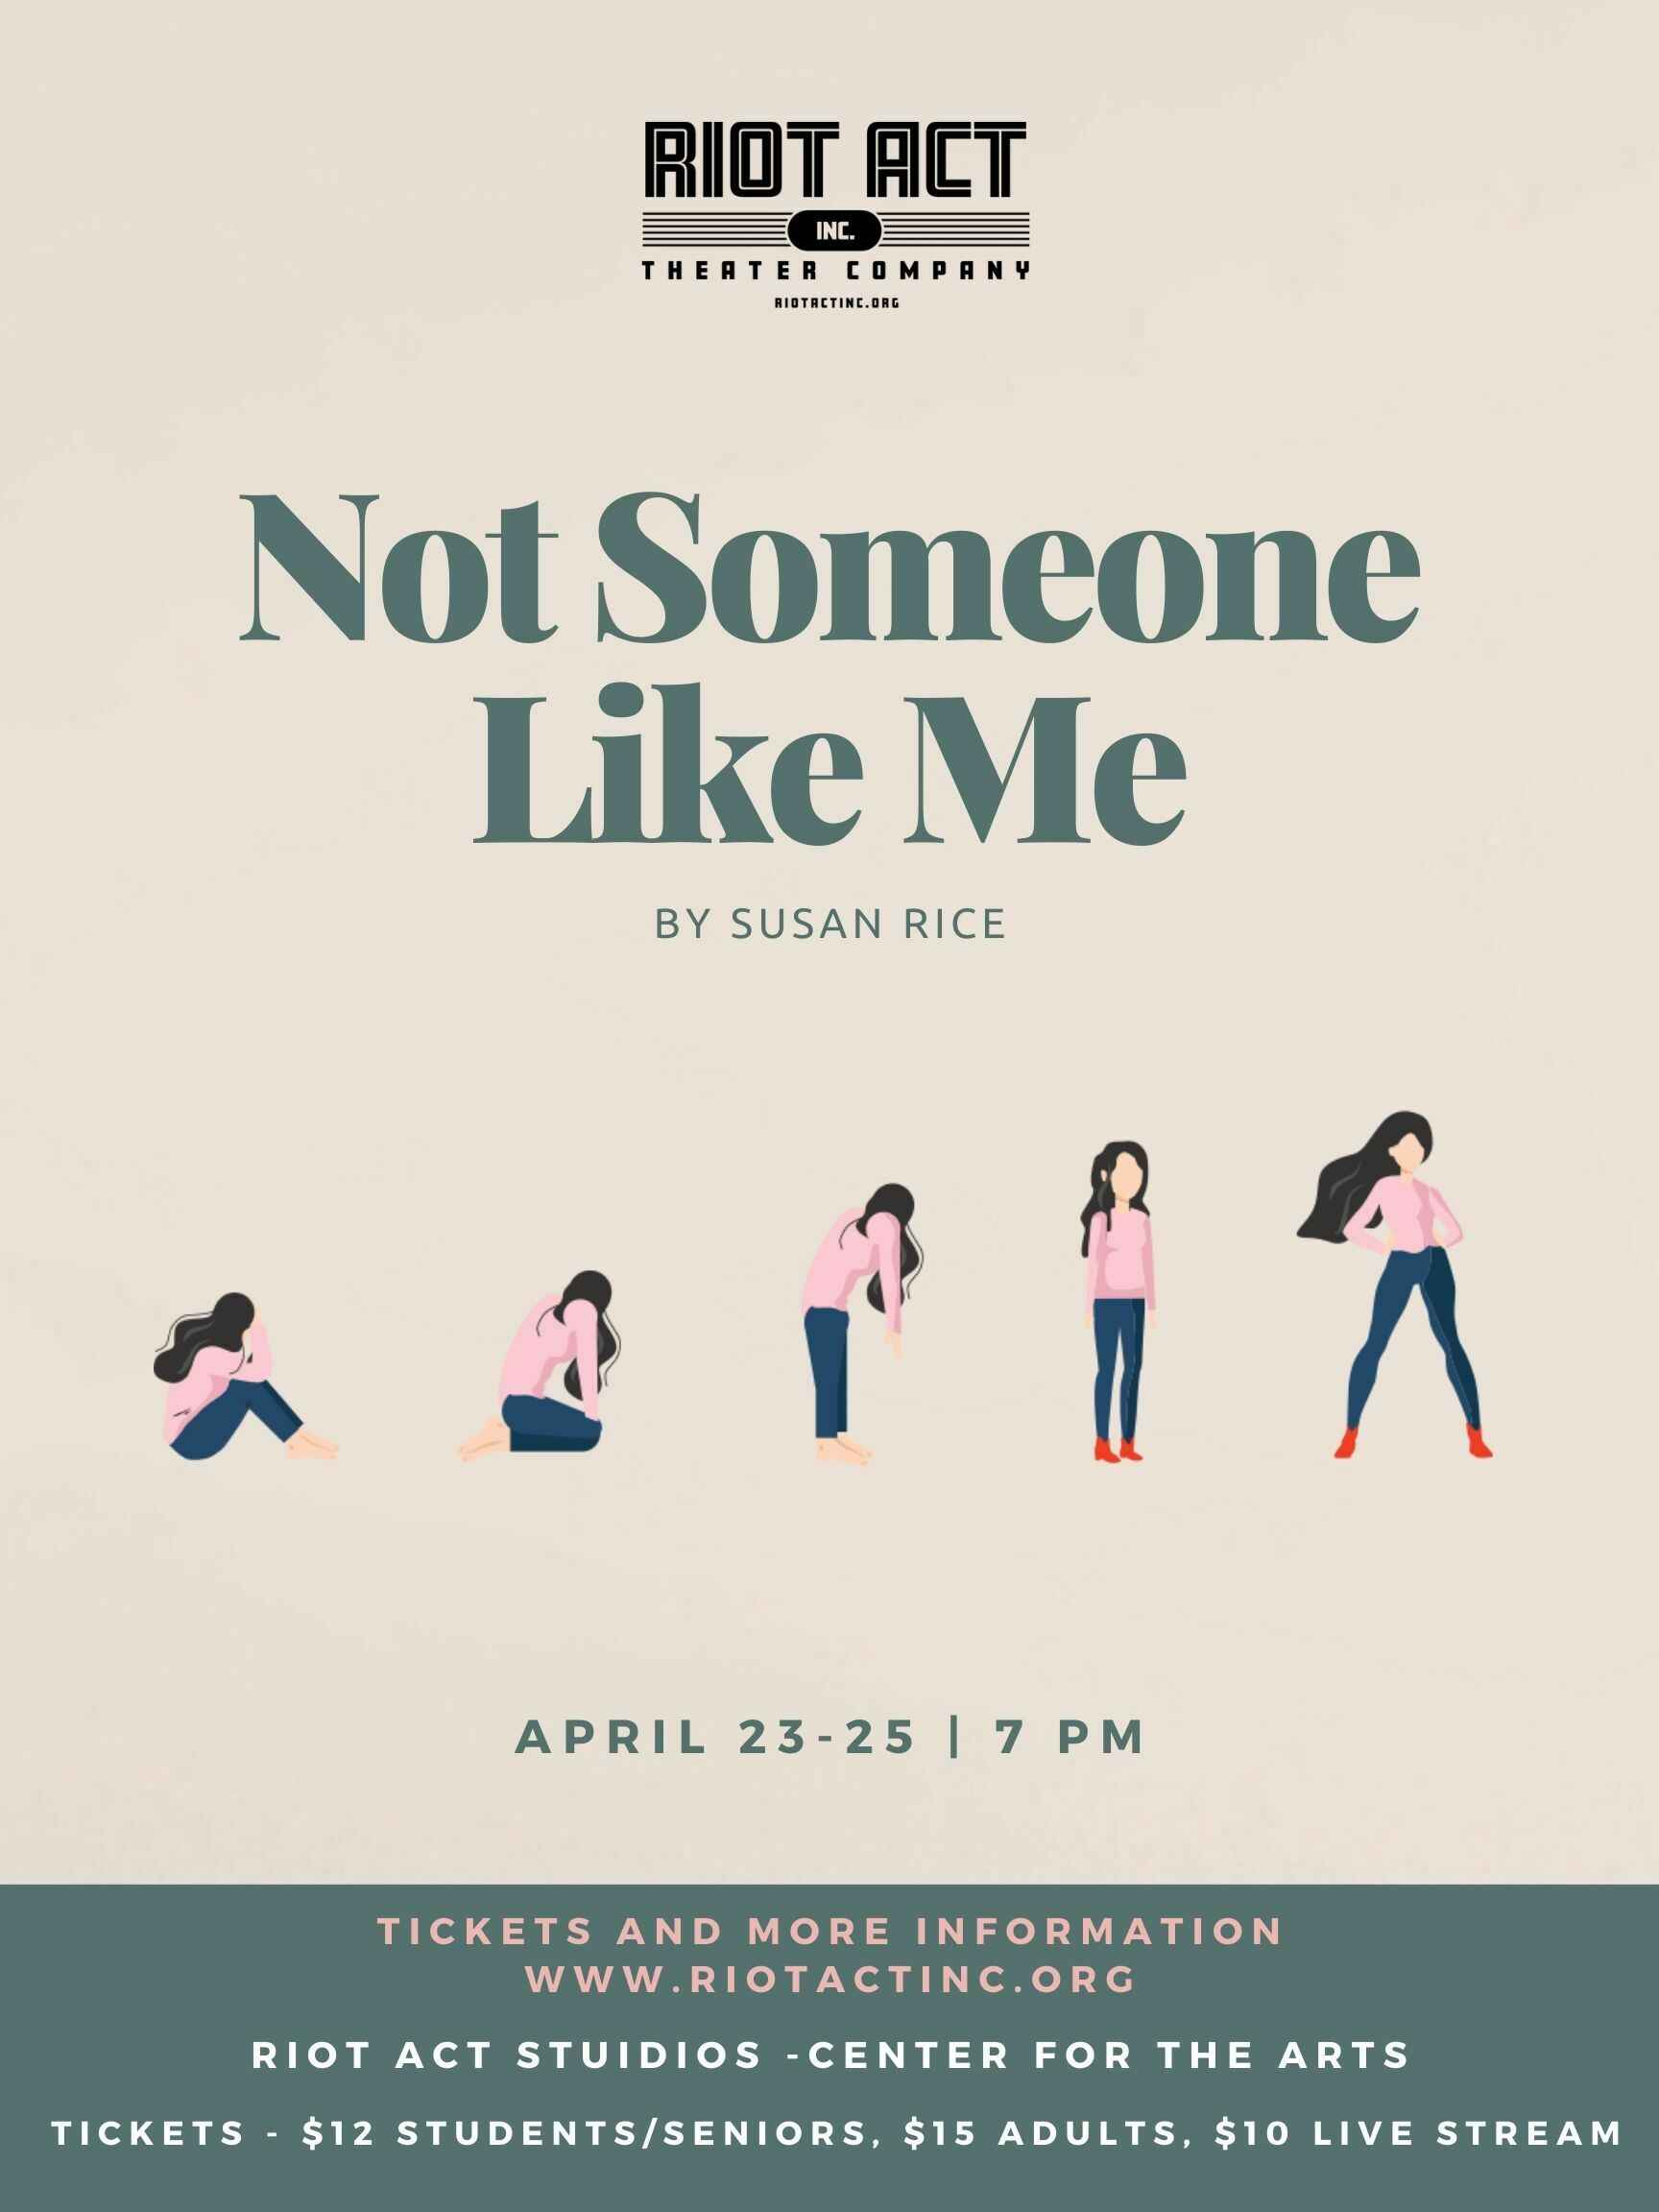 Not Someone Like Me by Susan Rice image